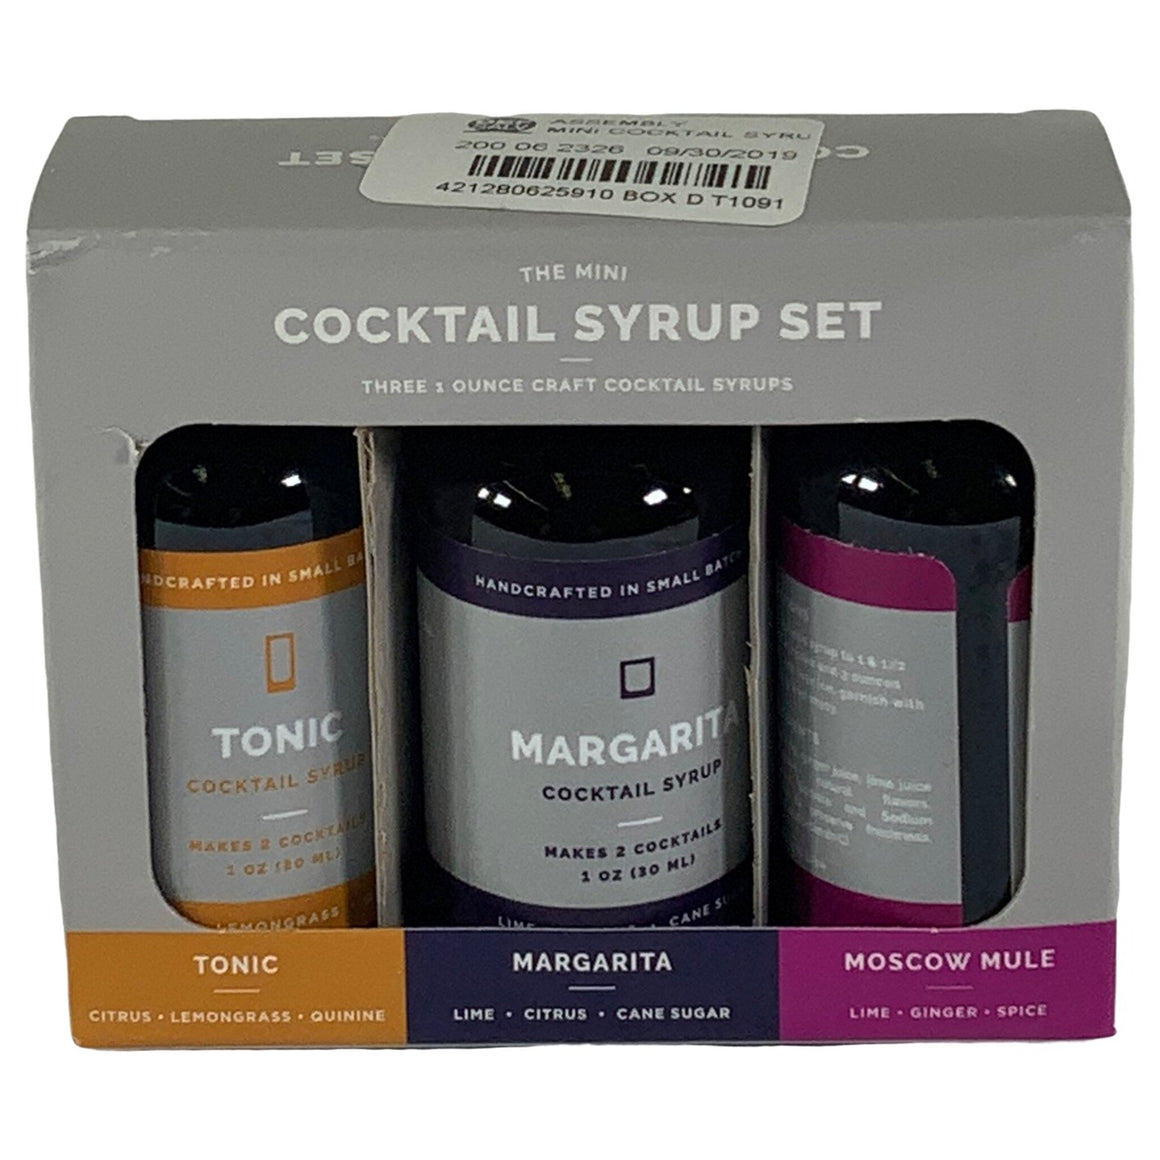 The Mini - Cocktail Syrup Set